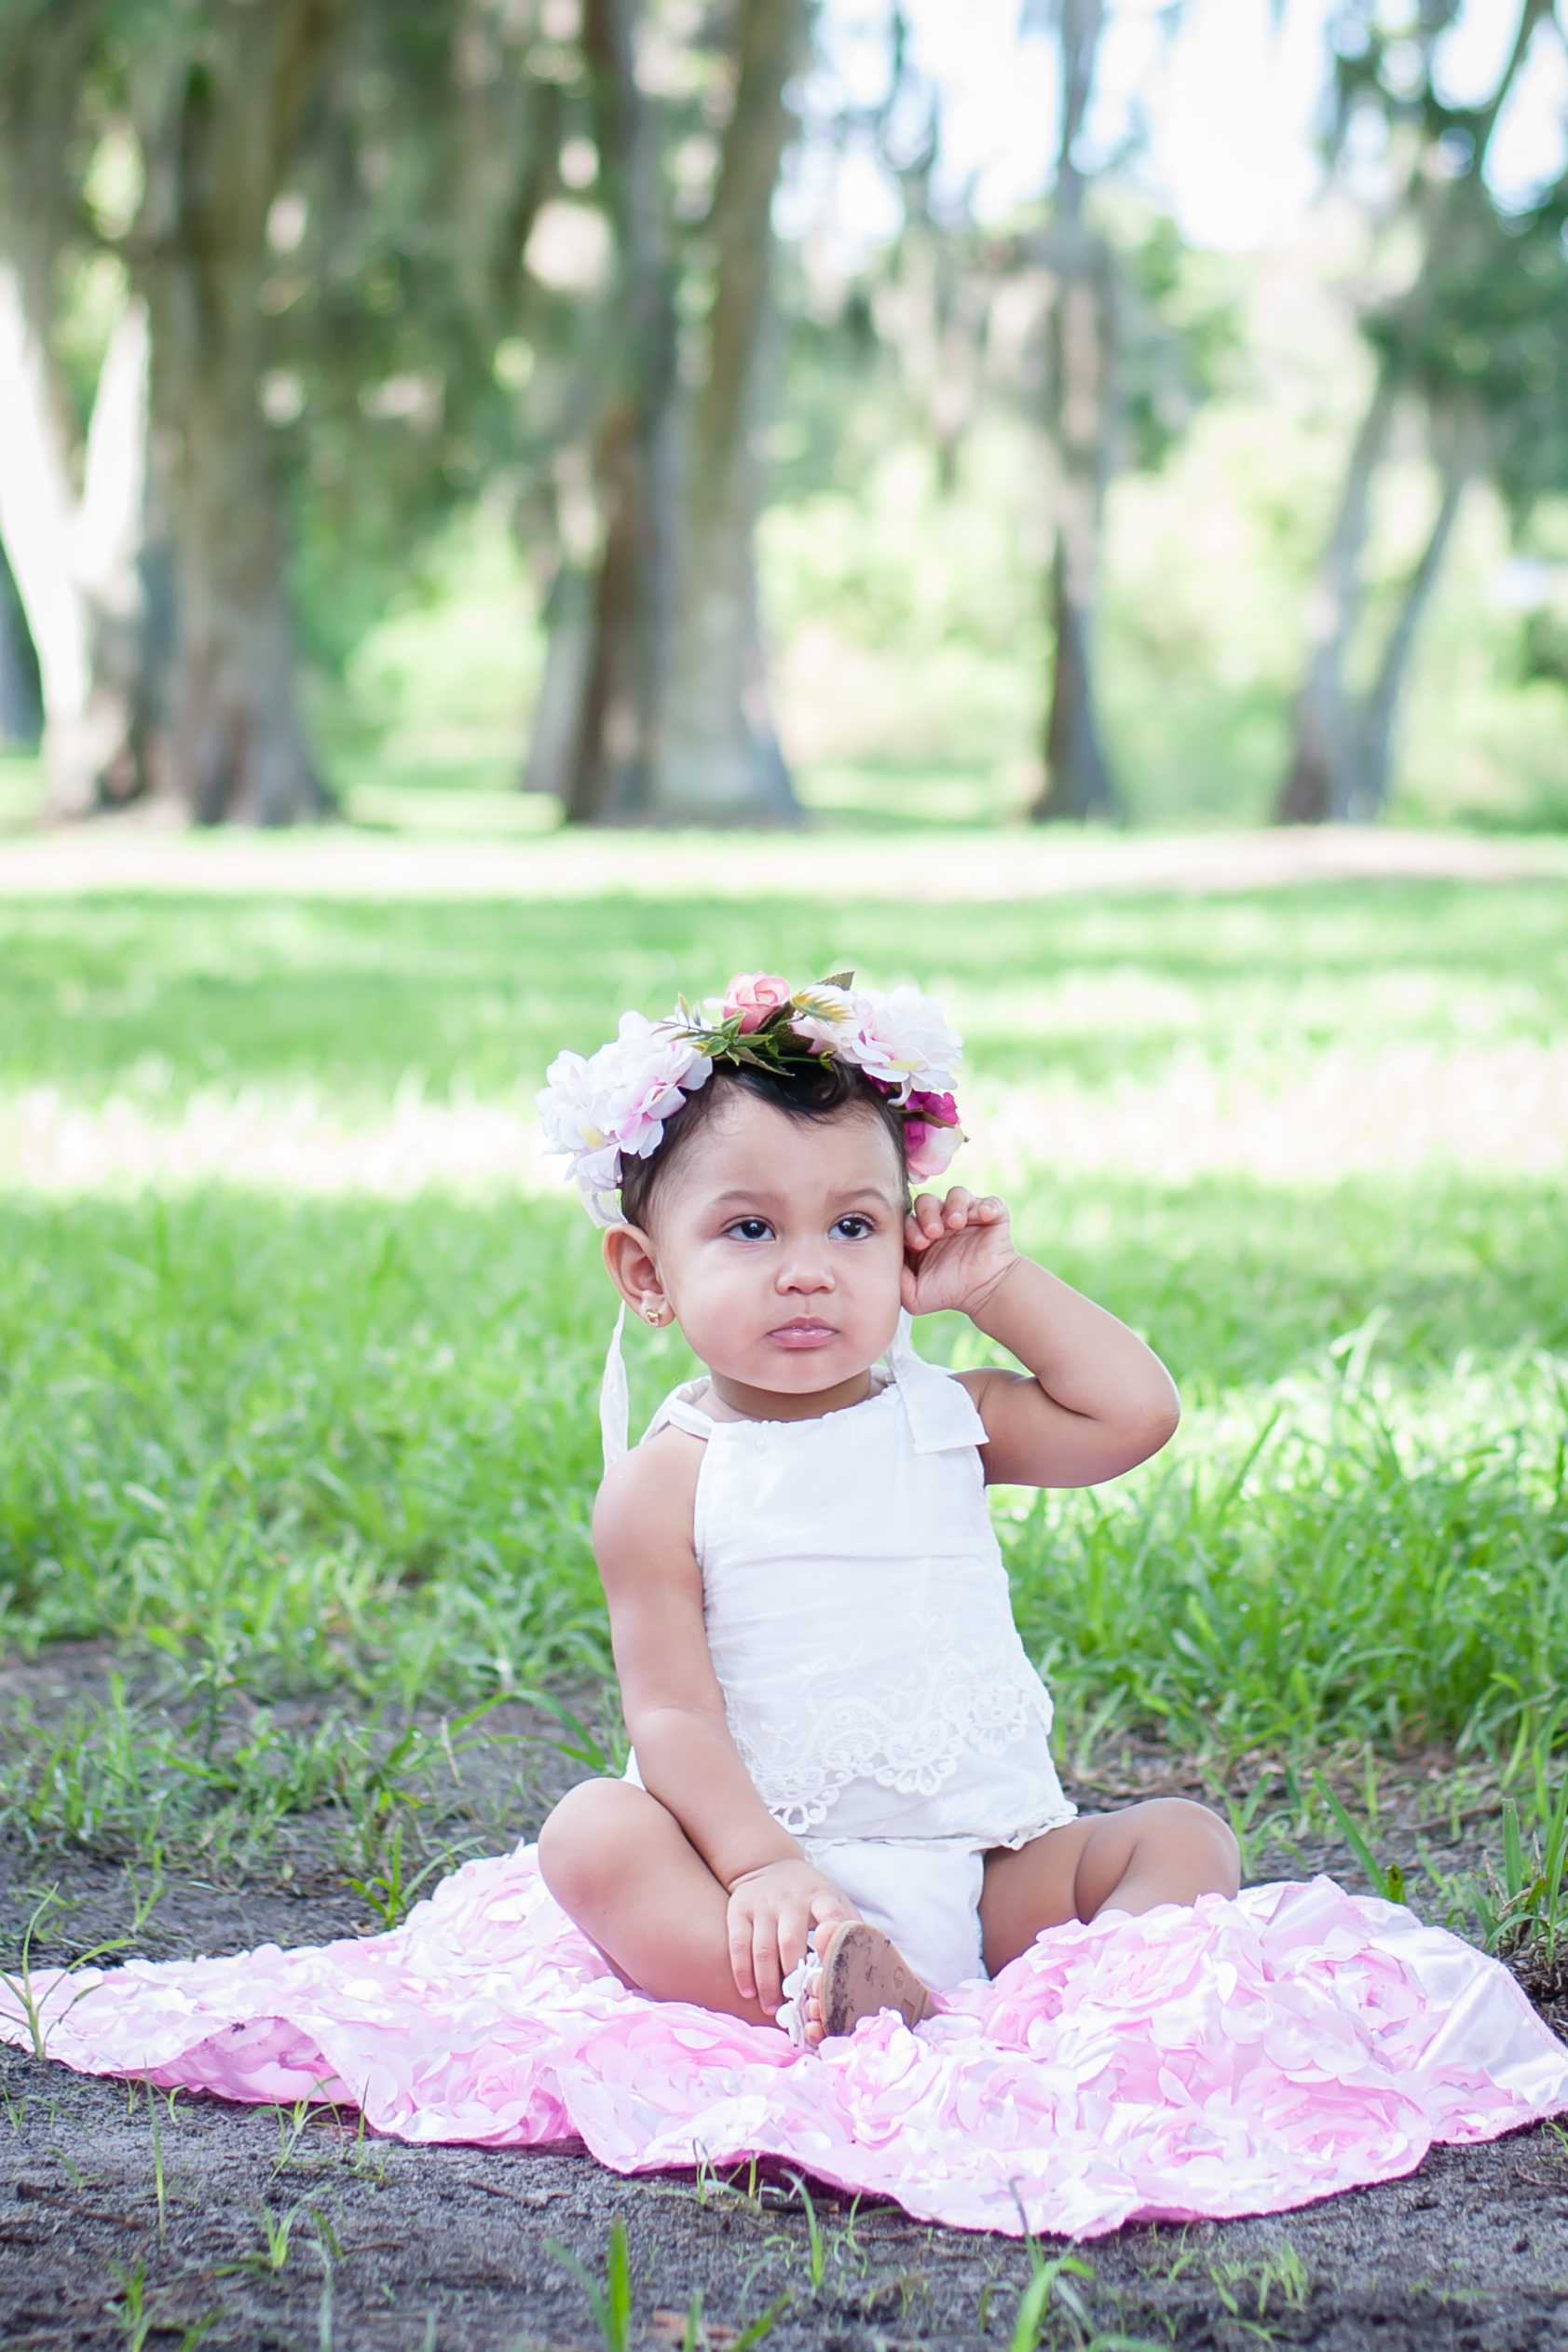 baby-first-birthday-photos-cypress-grove-park-yanitza-ninett-photography-1.jpg